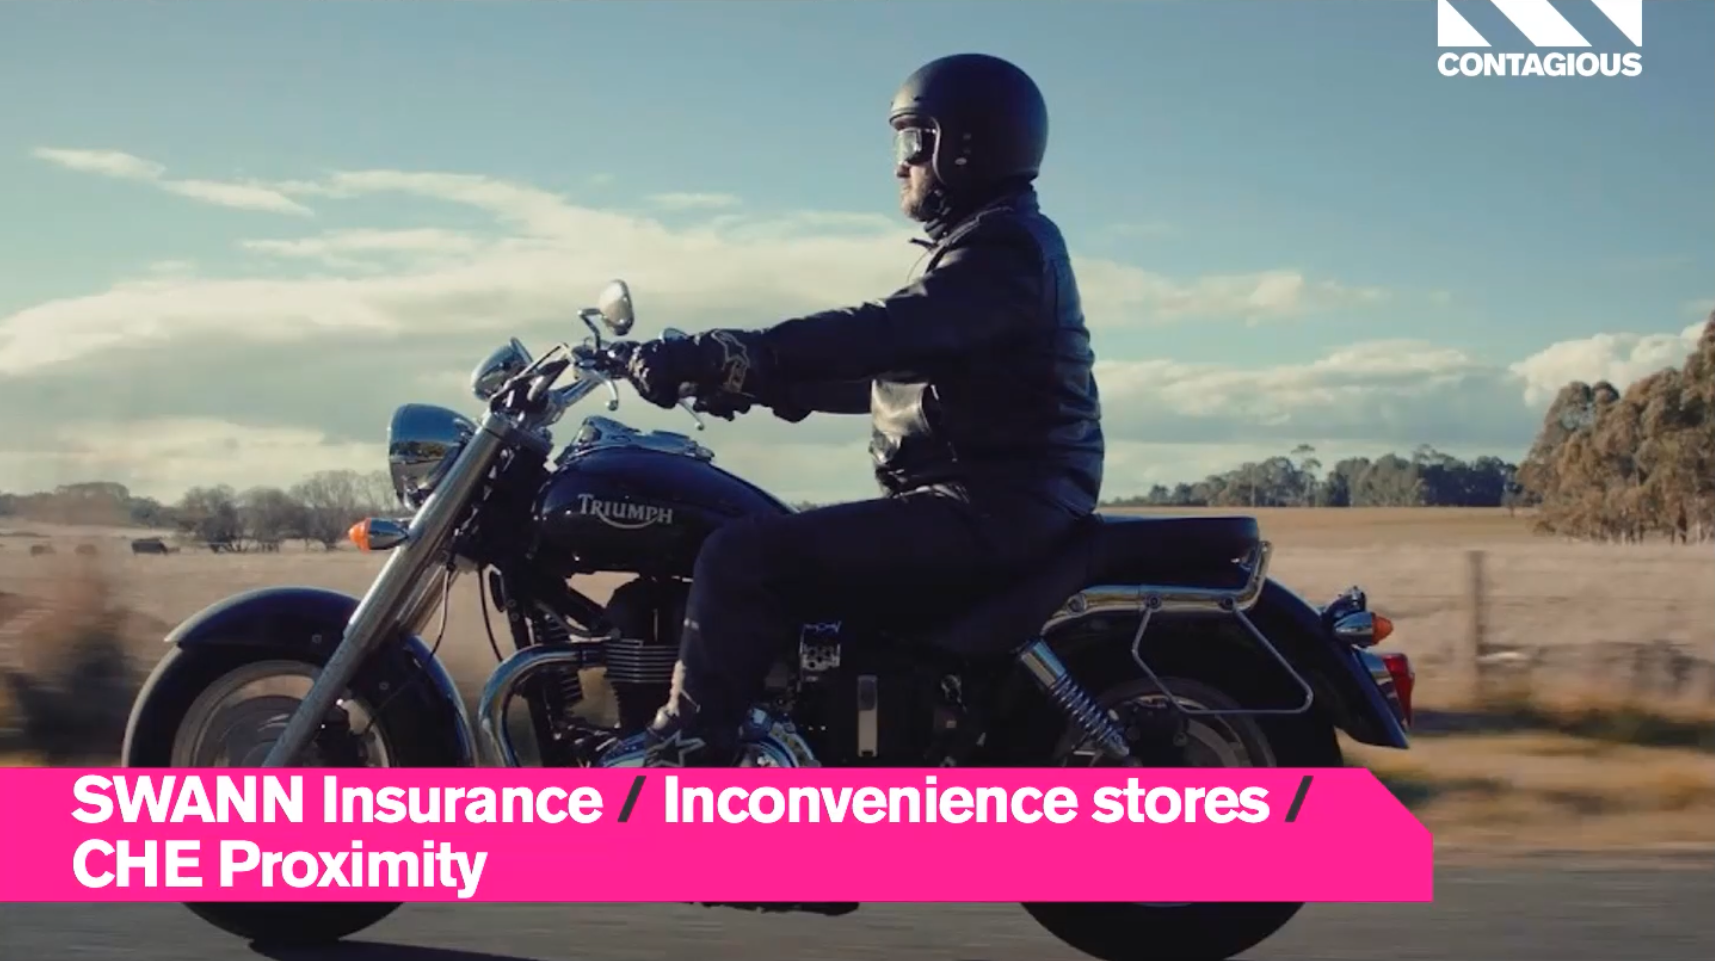 Audiense blog - SWANN Insurance   Inconvenience Stores   CHE Proxmity